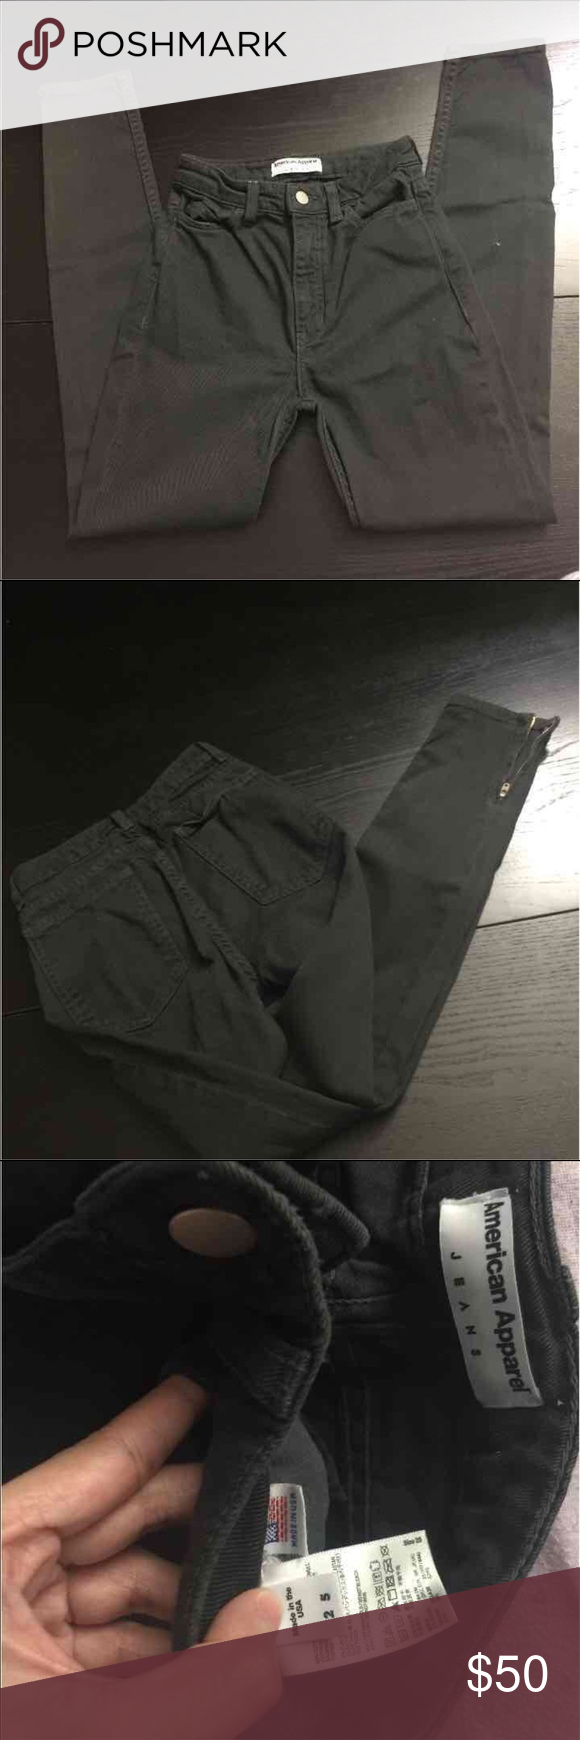 AMERICAN APPAREL JEANS New without tags. Size 25. Pls see 3rd pic for true color.. it's not black-black but kinda black/greyish in color American Apparel Jeans Skinny